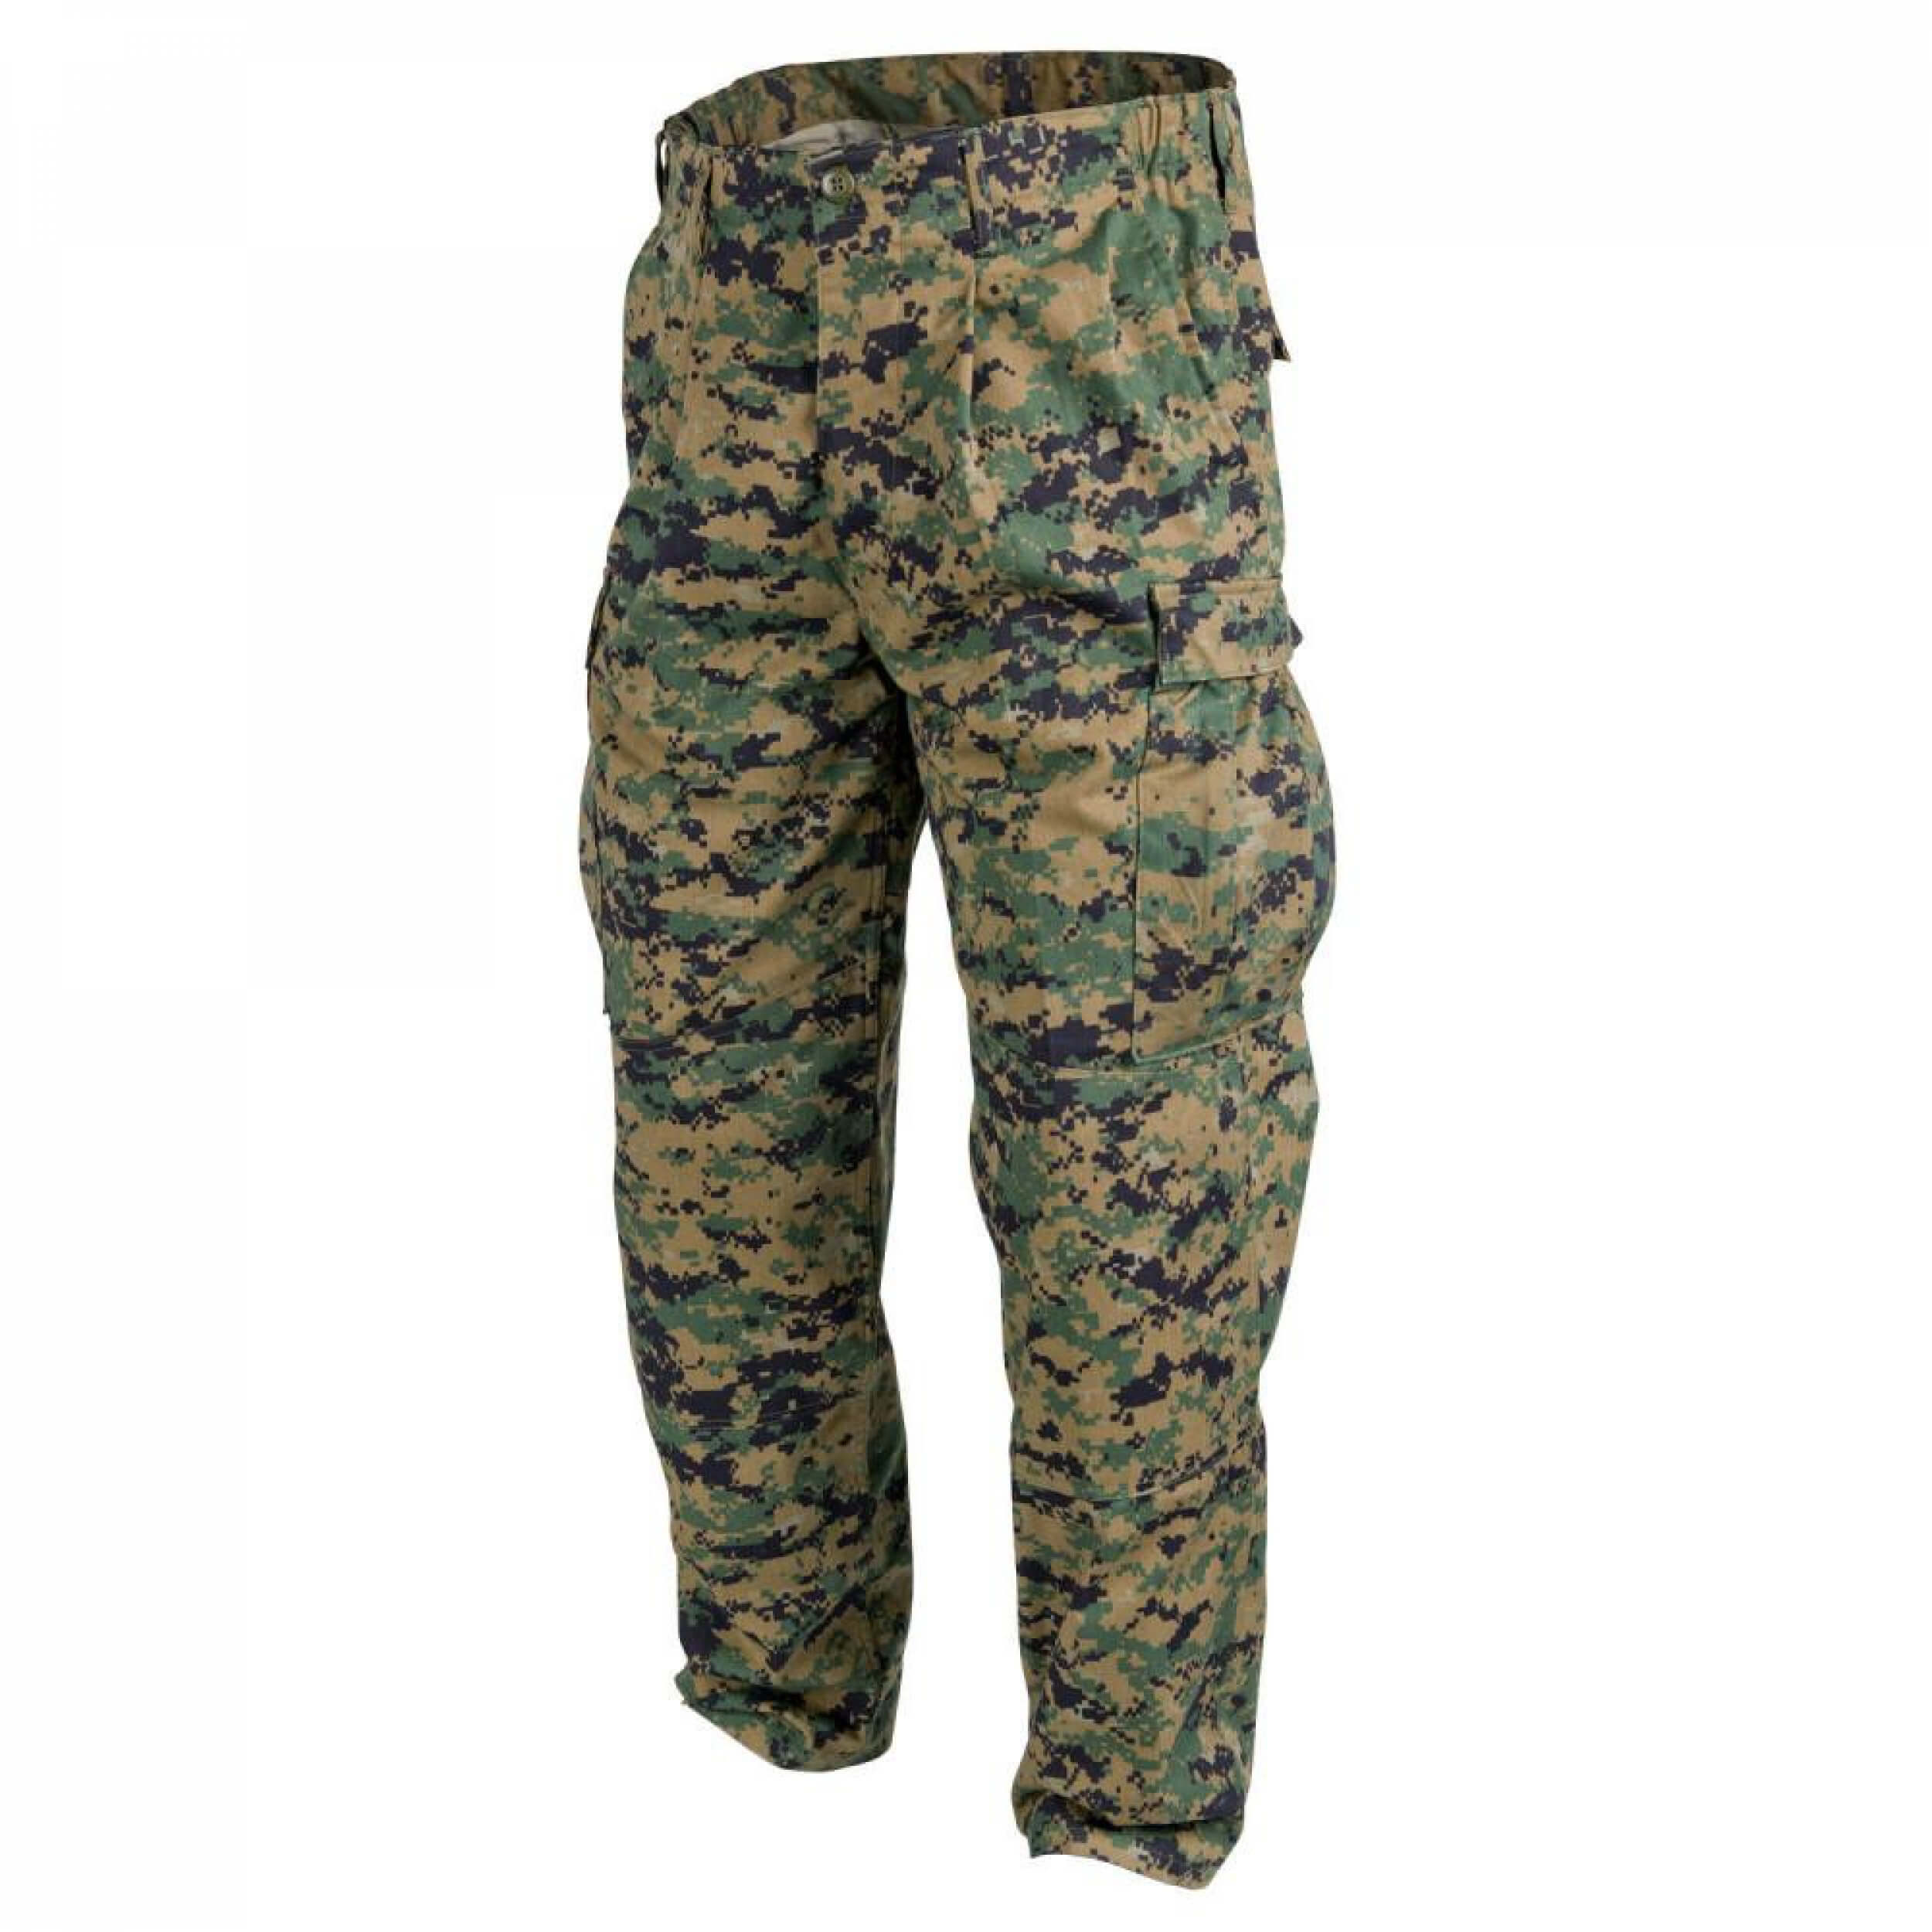 Helikon-Tex USMC Hose -PolyCotton Twill- USMC Digital Woodland